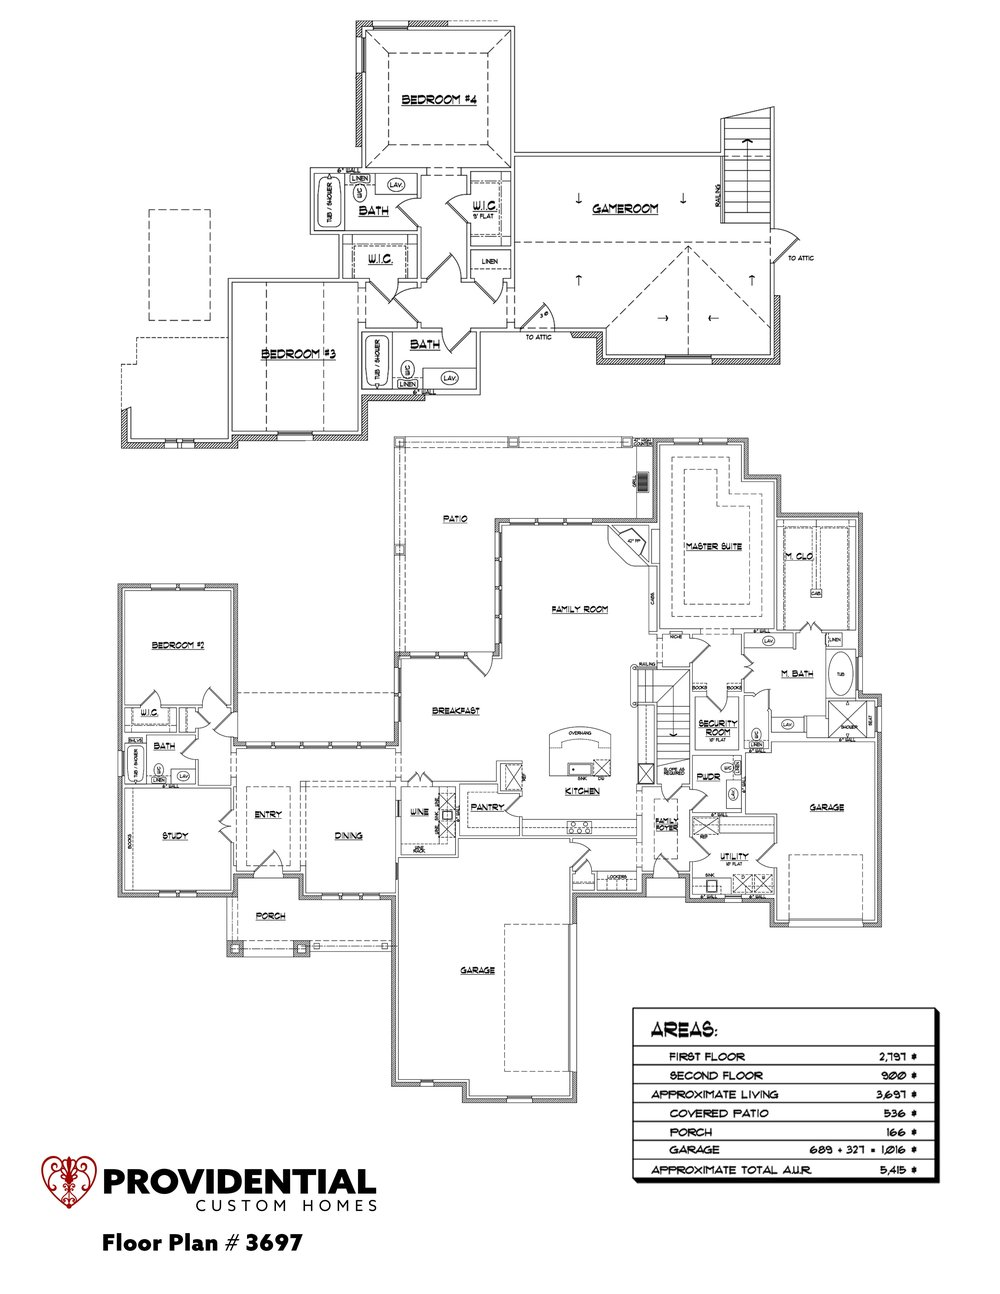 The FLOOR PLAN #3697.jpg